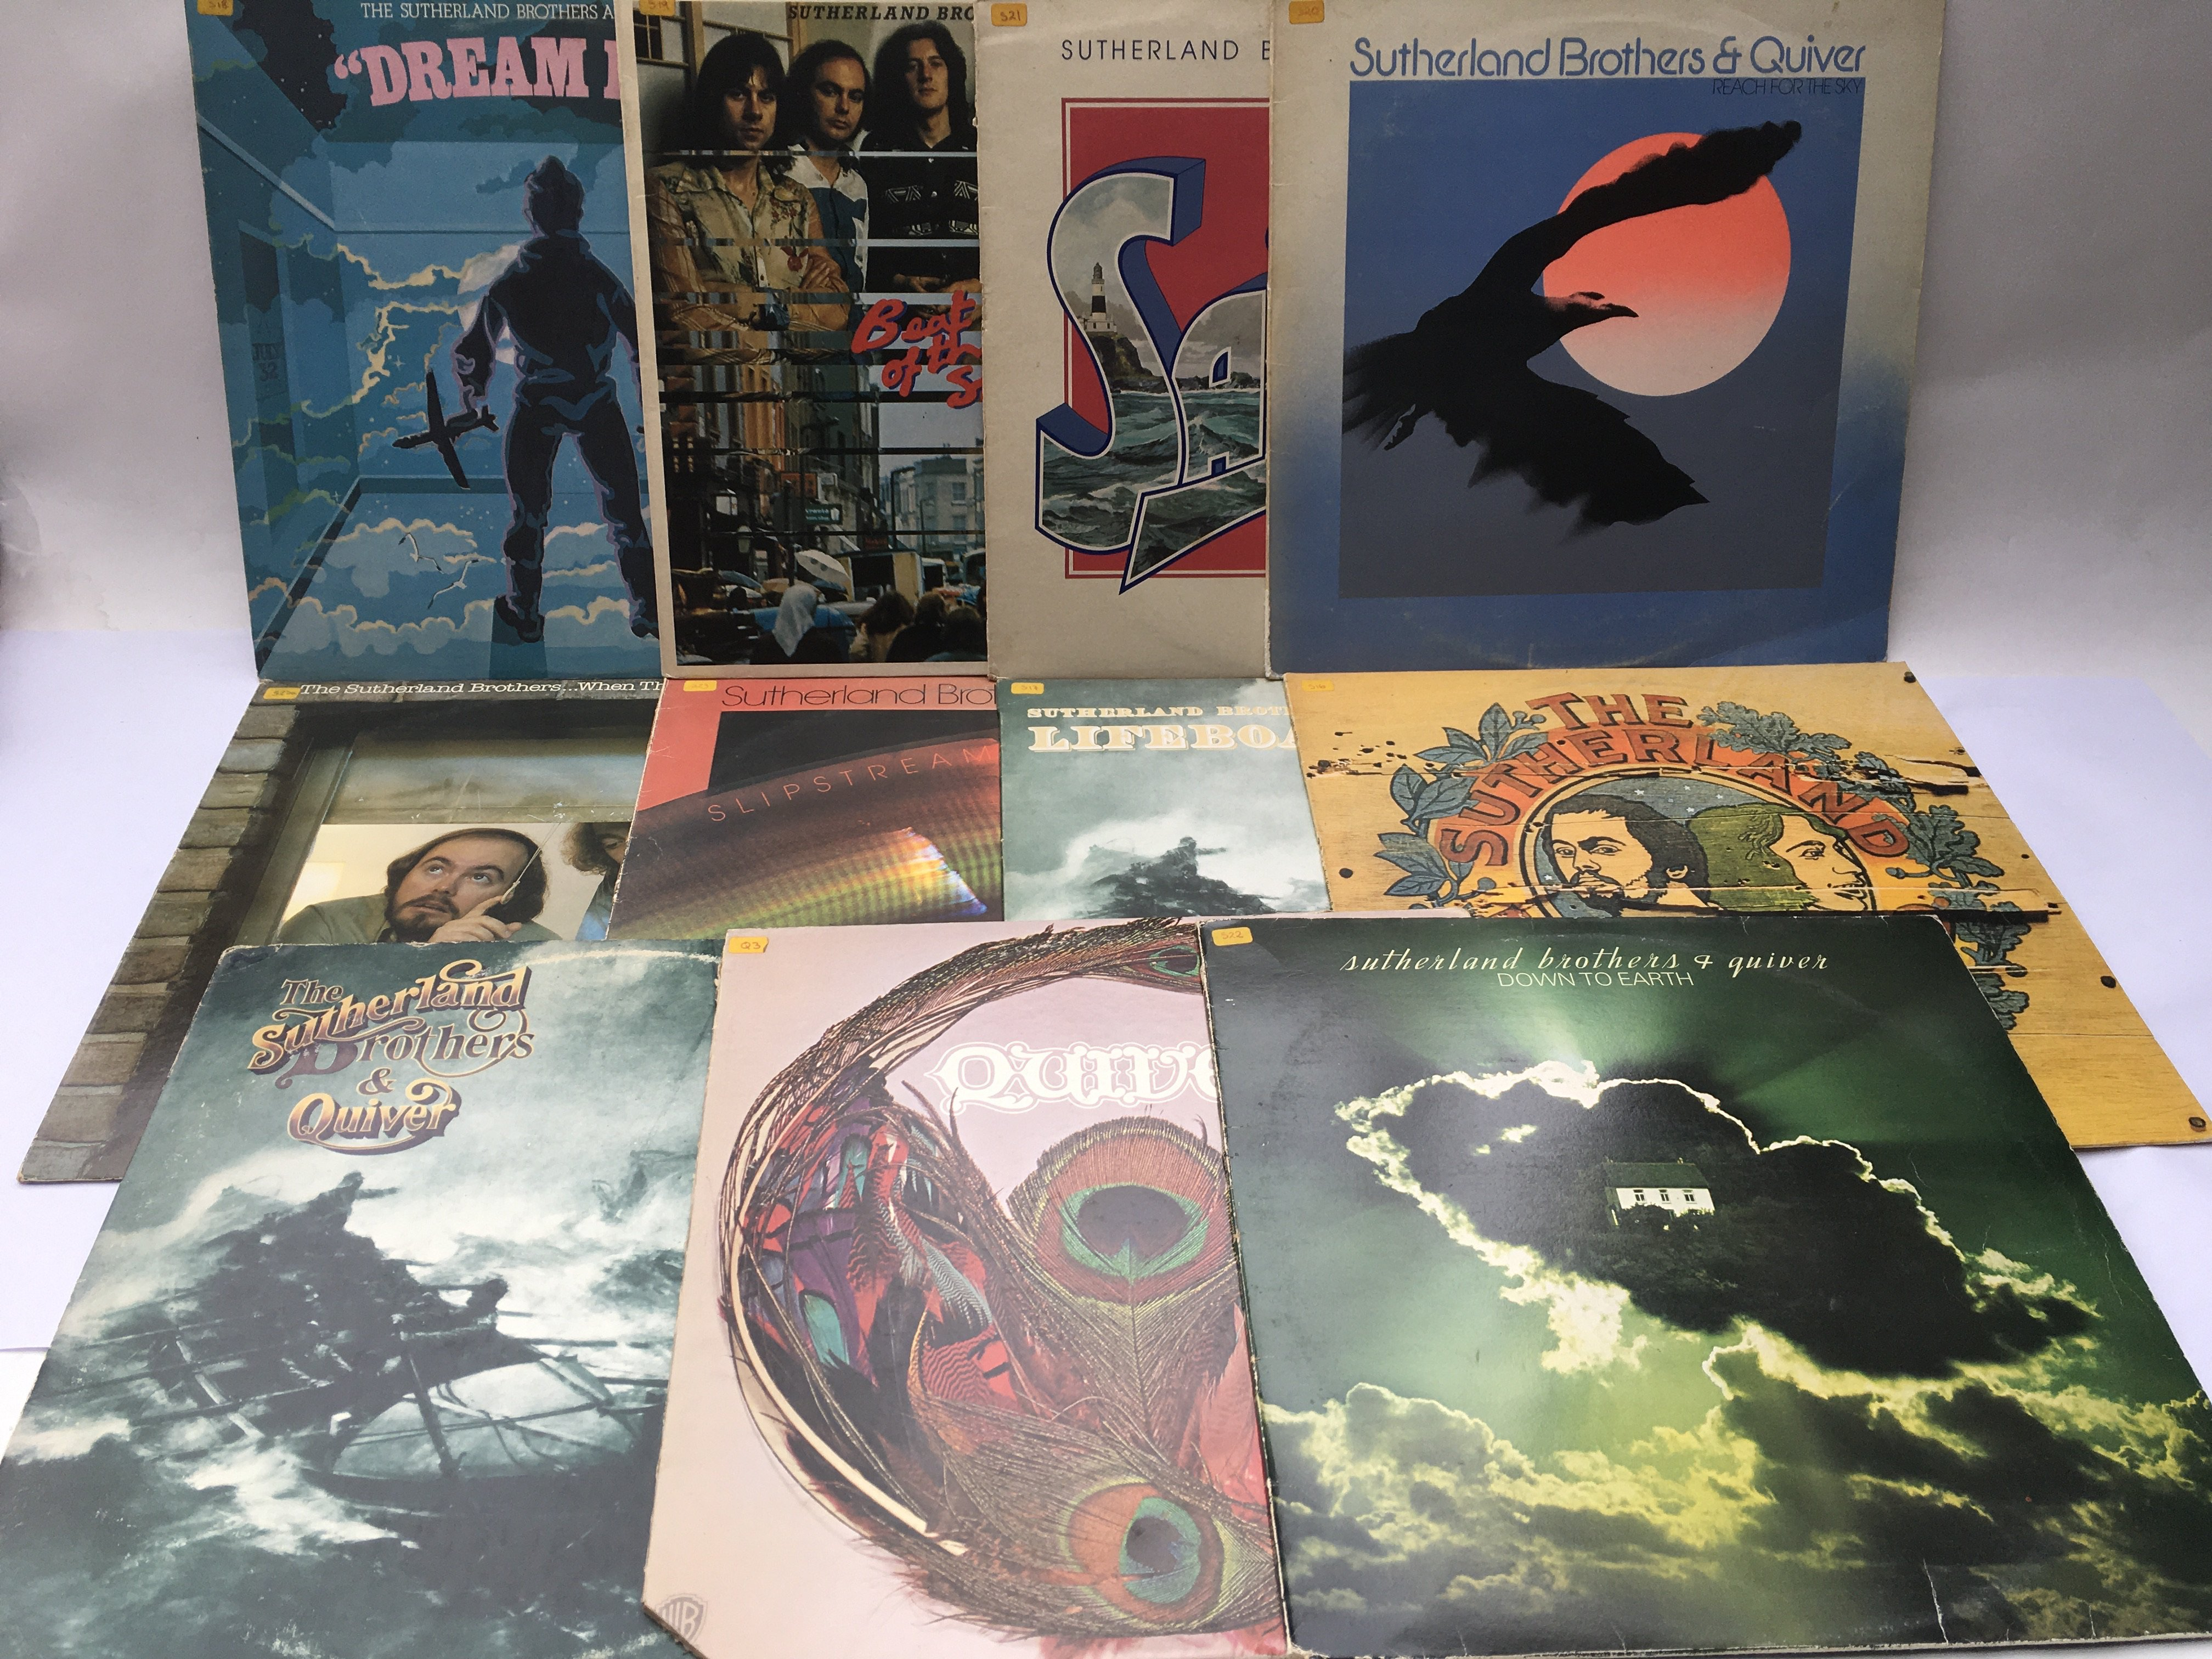 Eleven Sutherland Brothers and Quiver LPs.